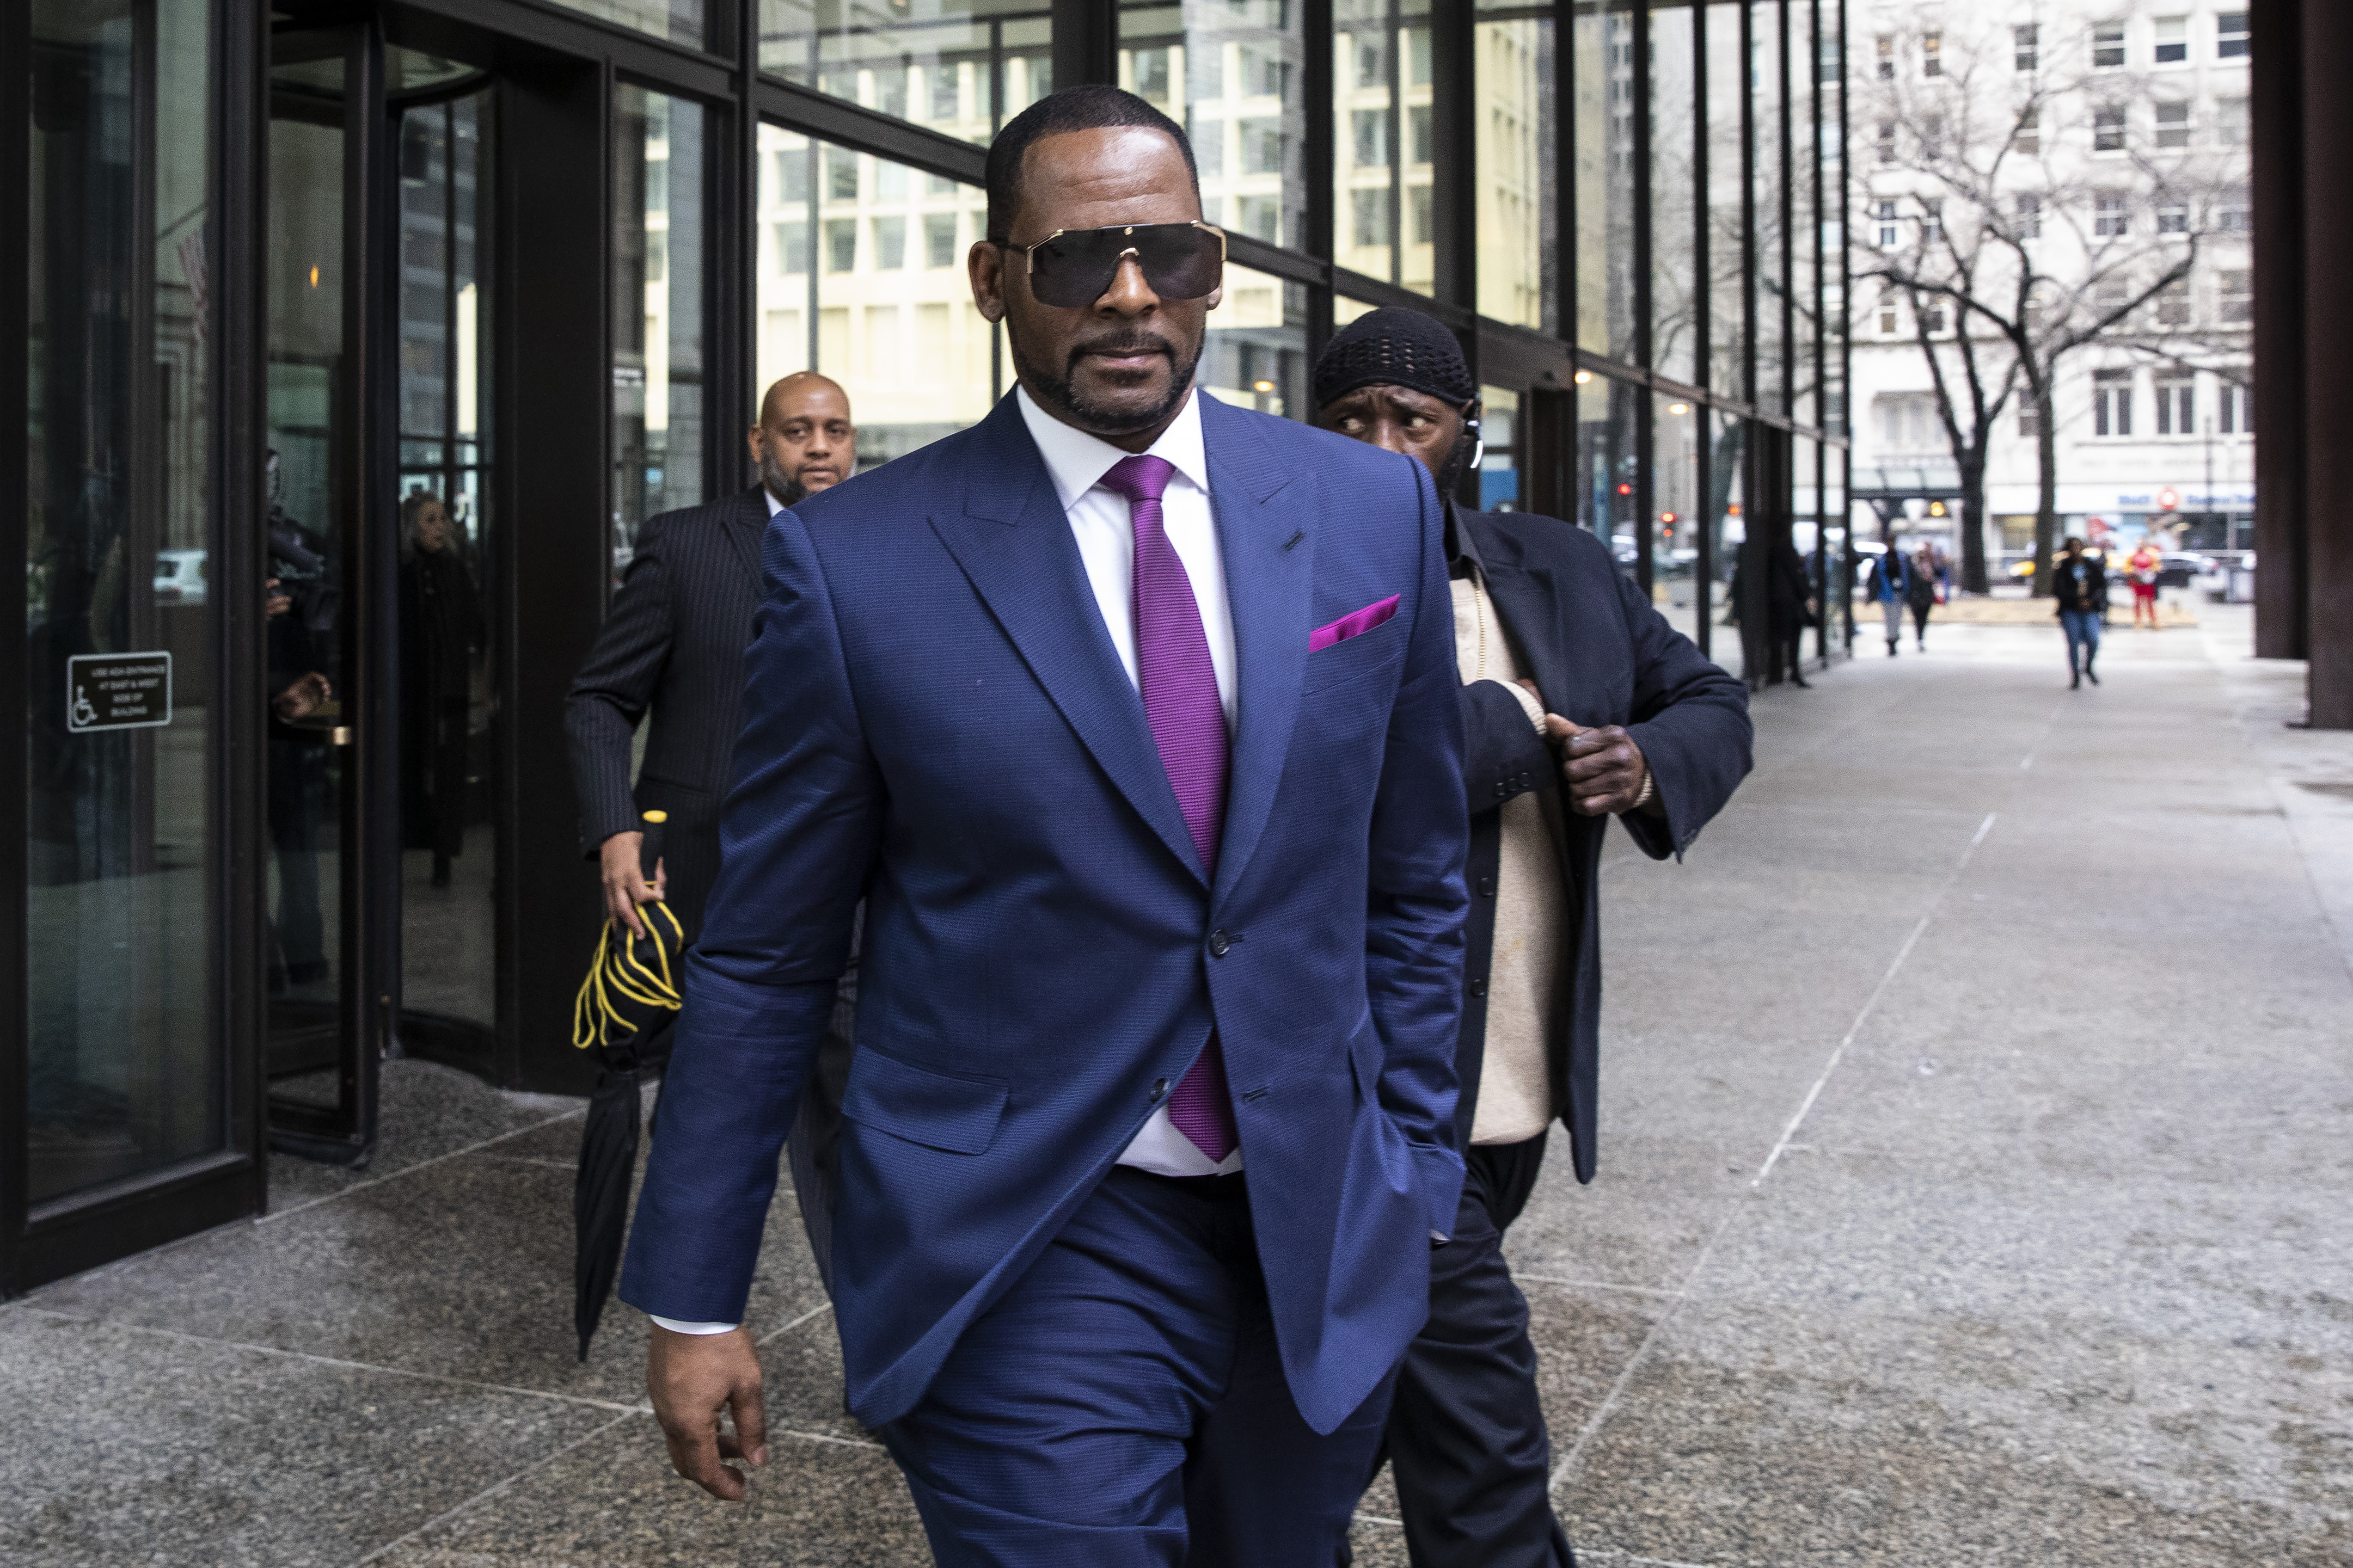 R. Kelly walks out of the Daley Center after an appearance in child support court in March 2019.